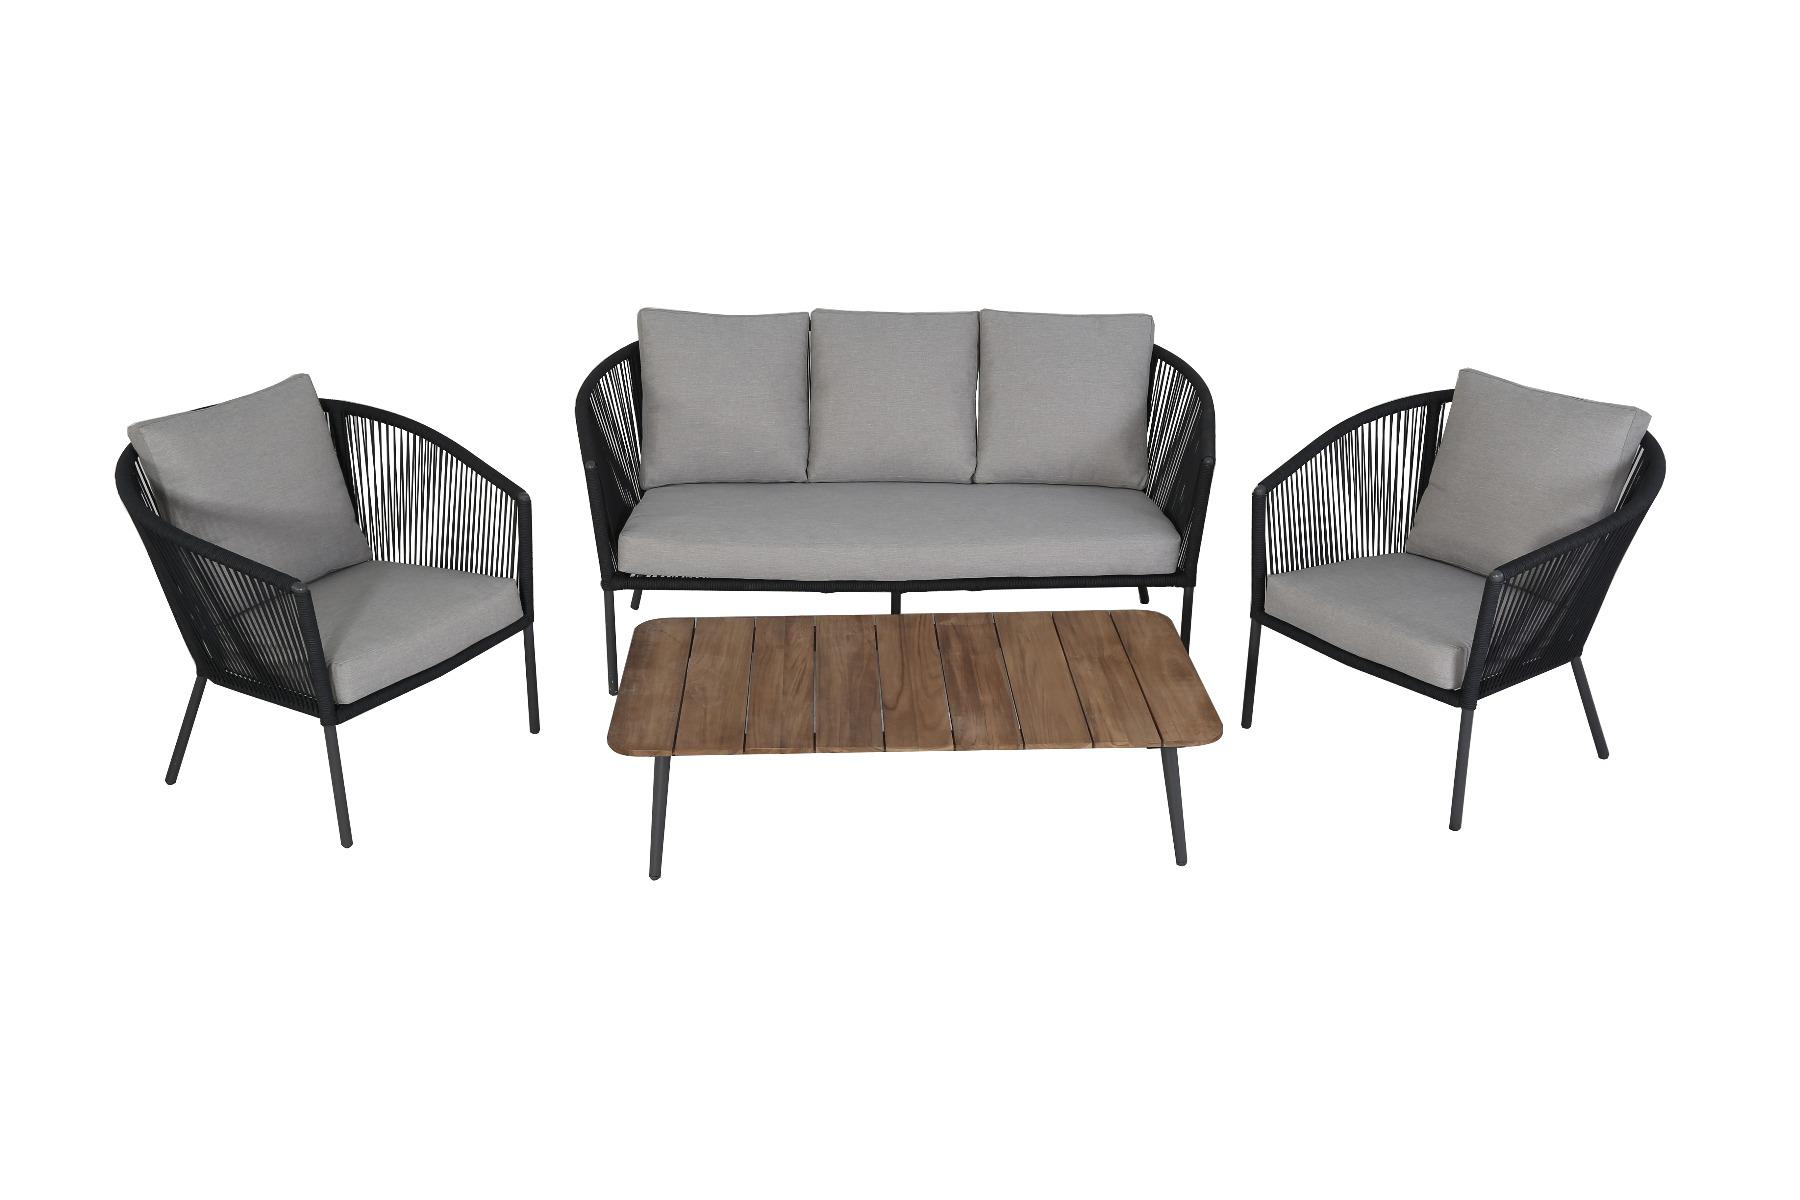 Korting Reims stackable lounge set 4pcs (2x chair bench table 130x70x34cm)